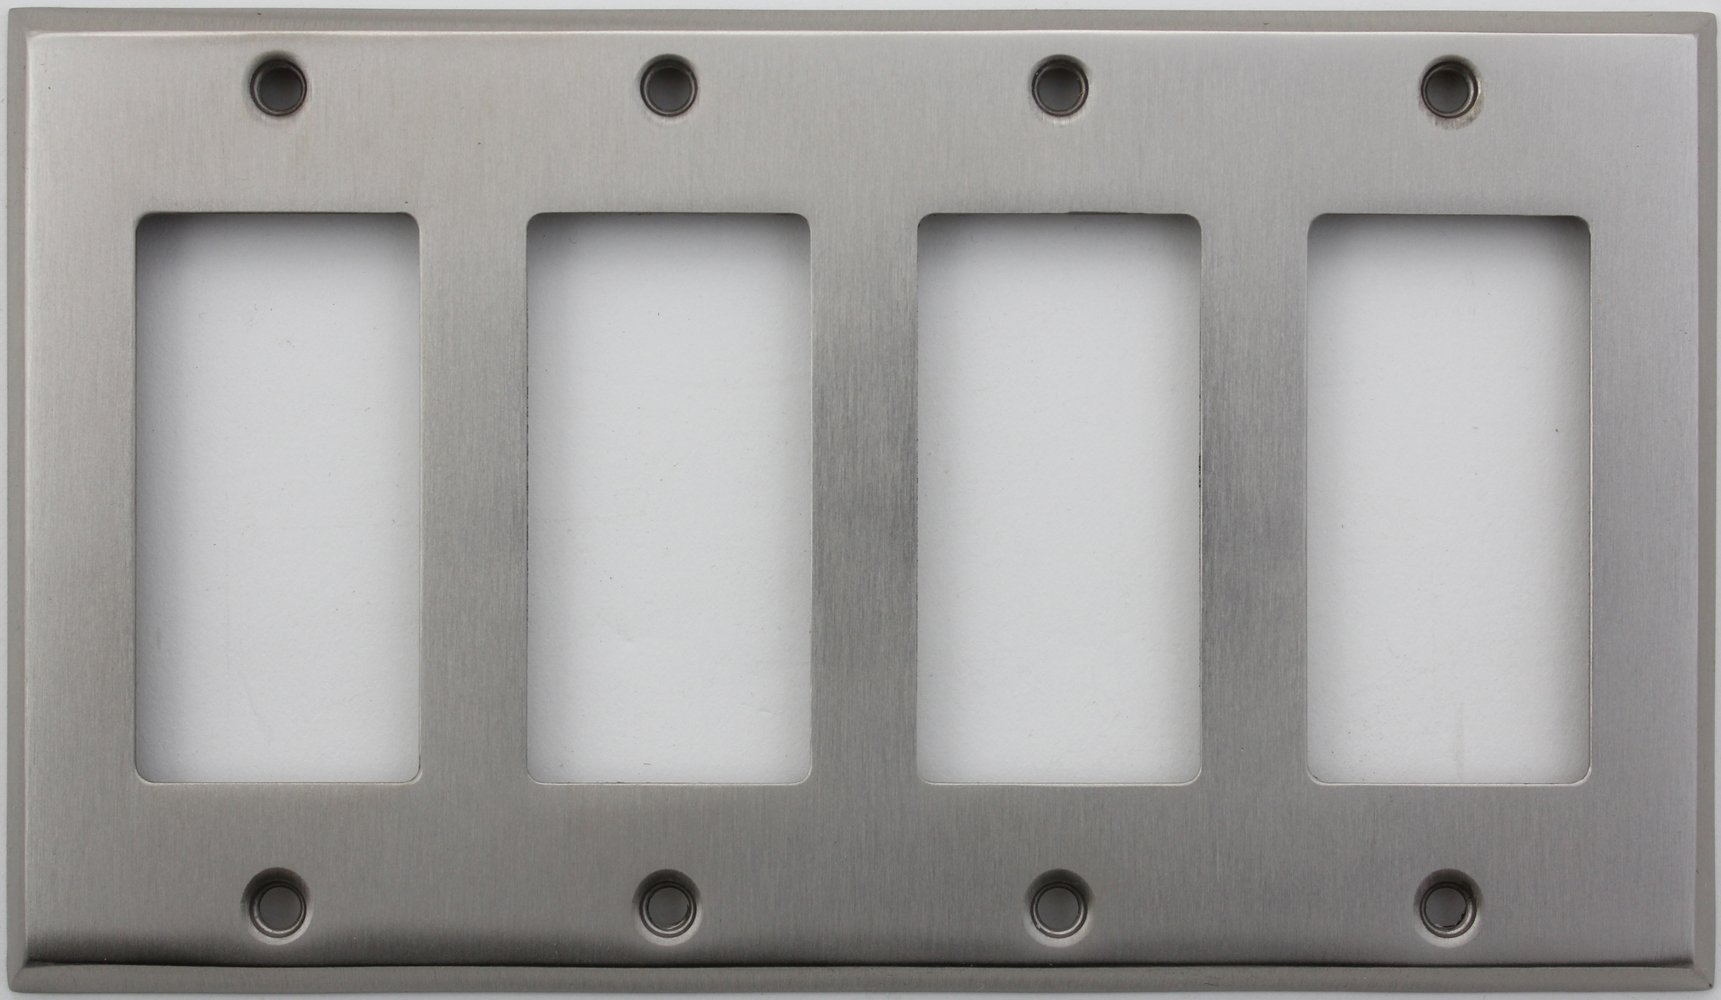 Classic Accents Stamped Steel Satin Nickel Four Gang GFI/Rocker Openings Wall Plate